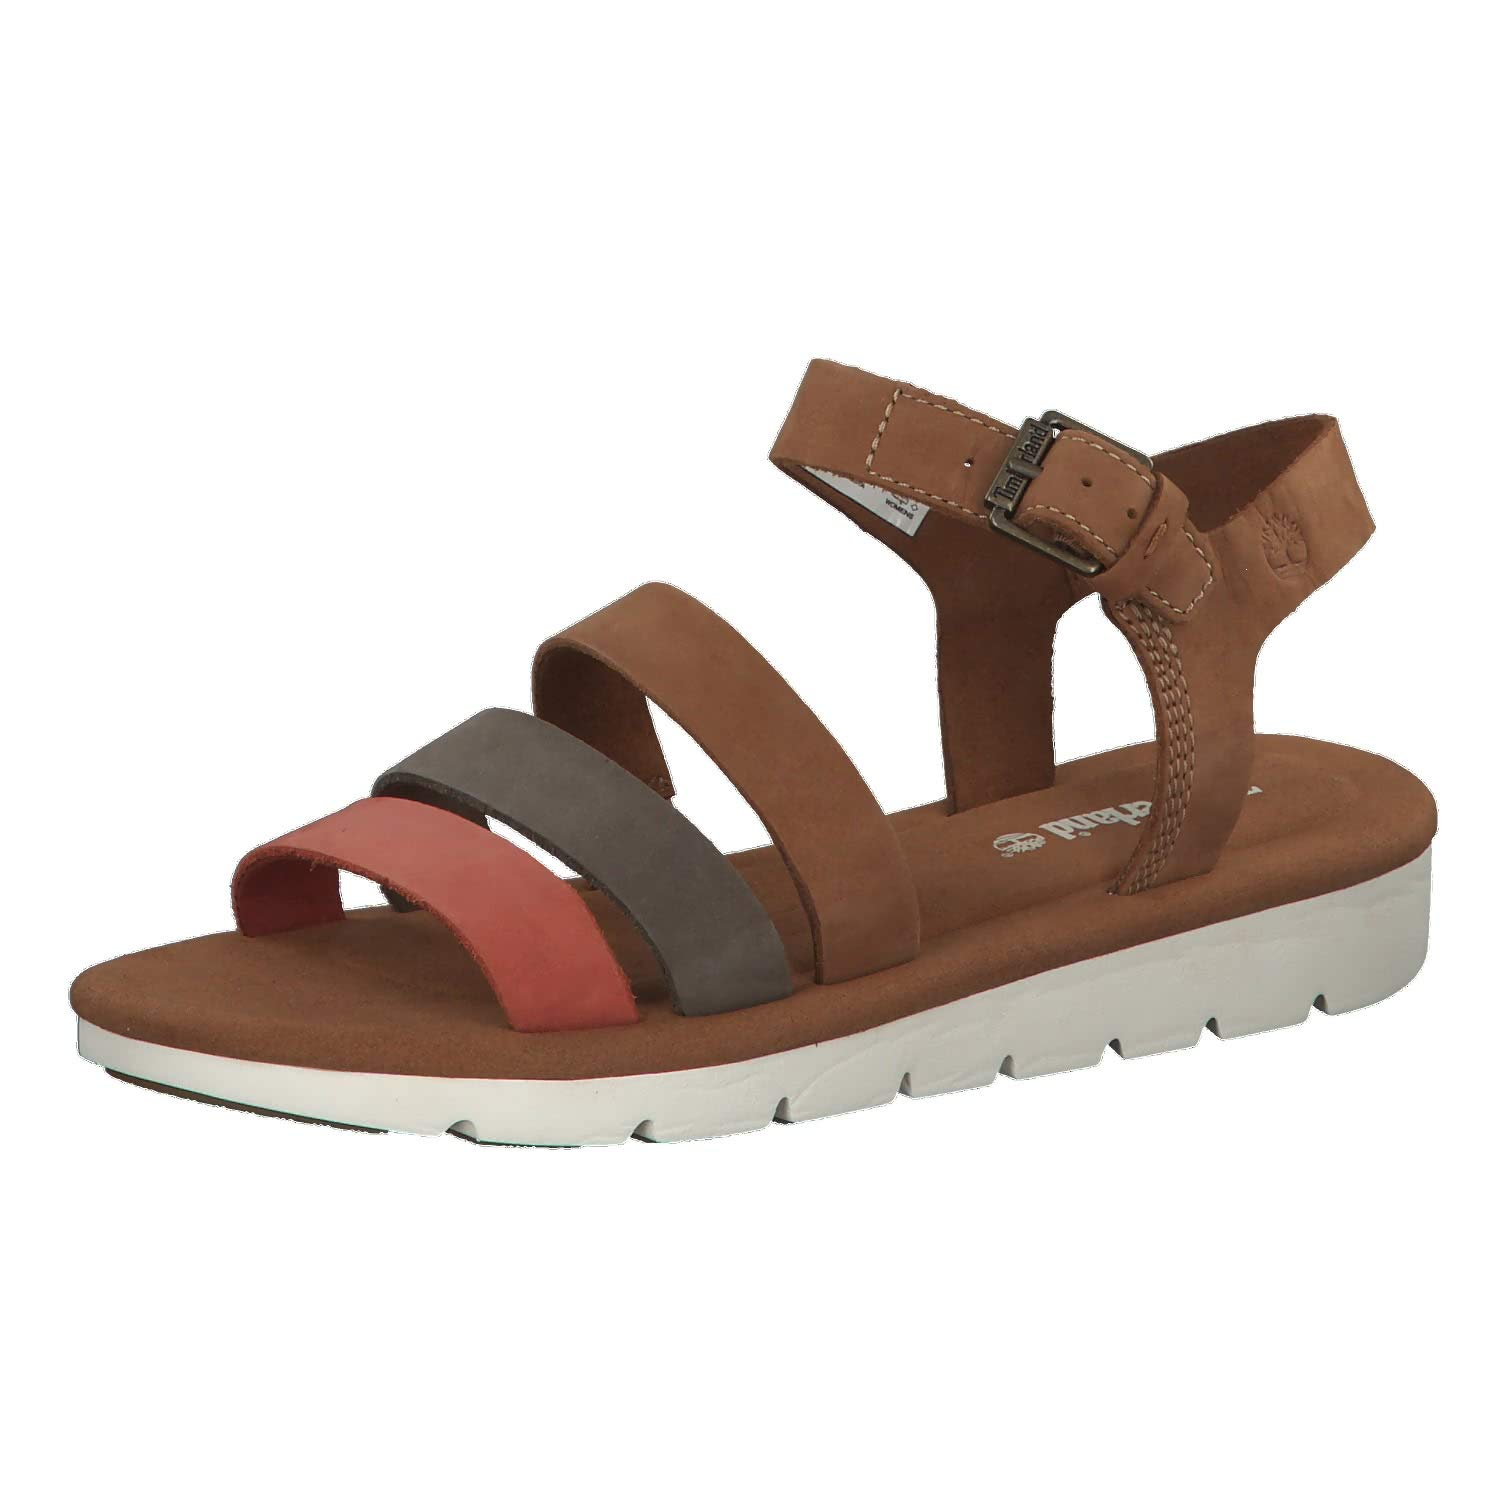 for LouSandals Lottie co Timberland uk WomenAmazon vN8nwm0